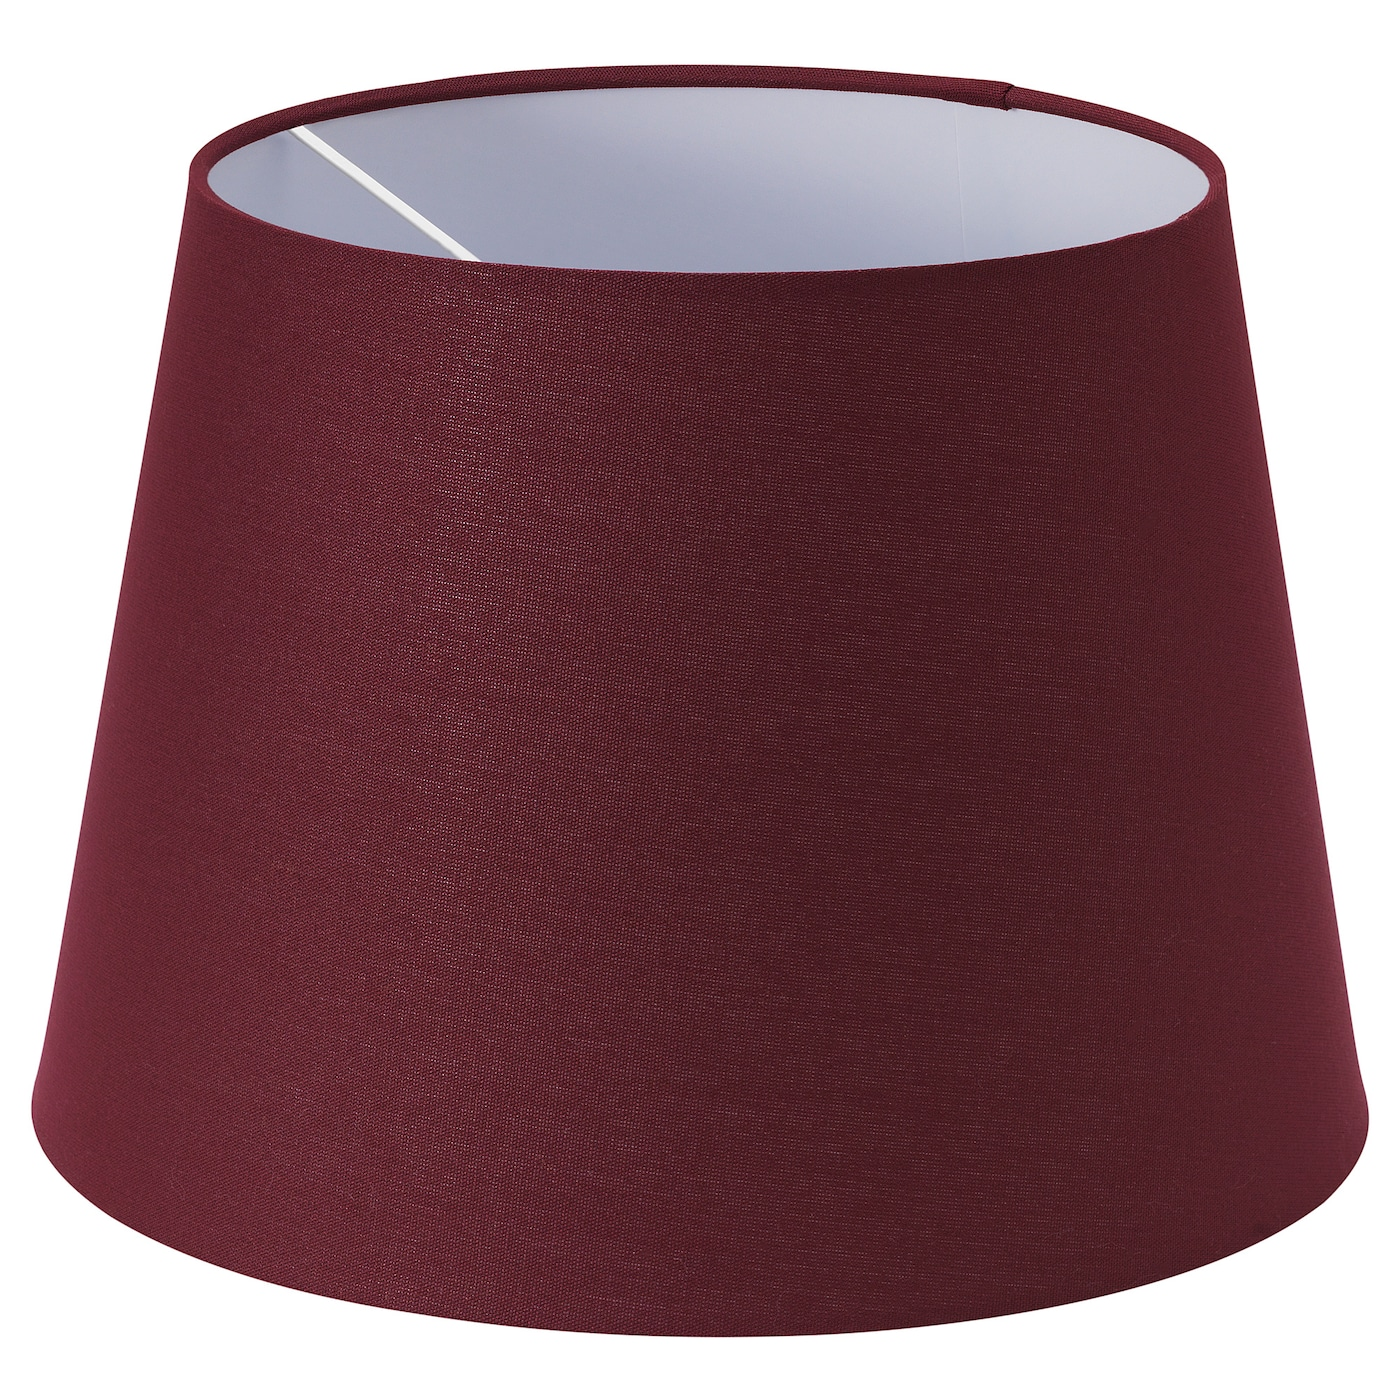 IKEA RYRA lamp shade